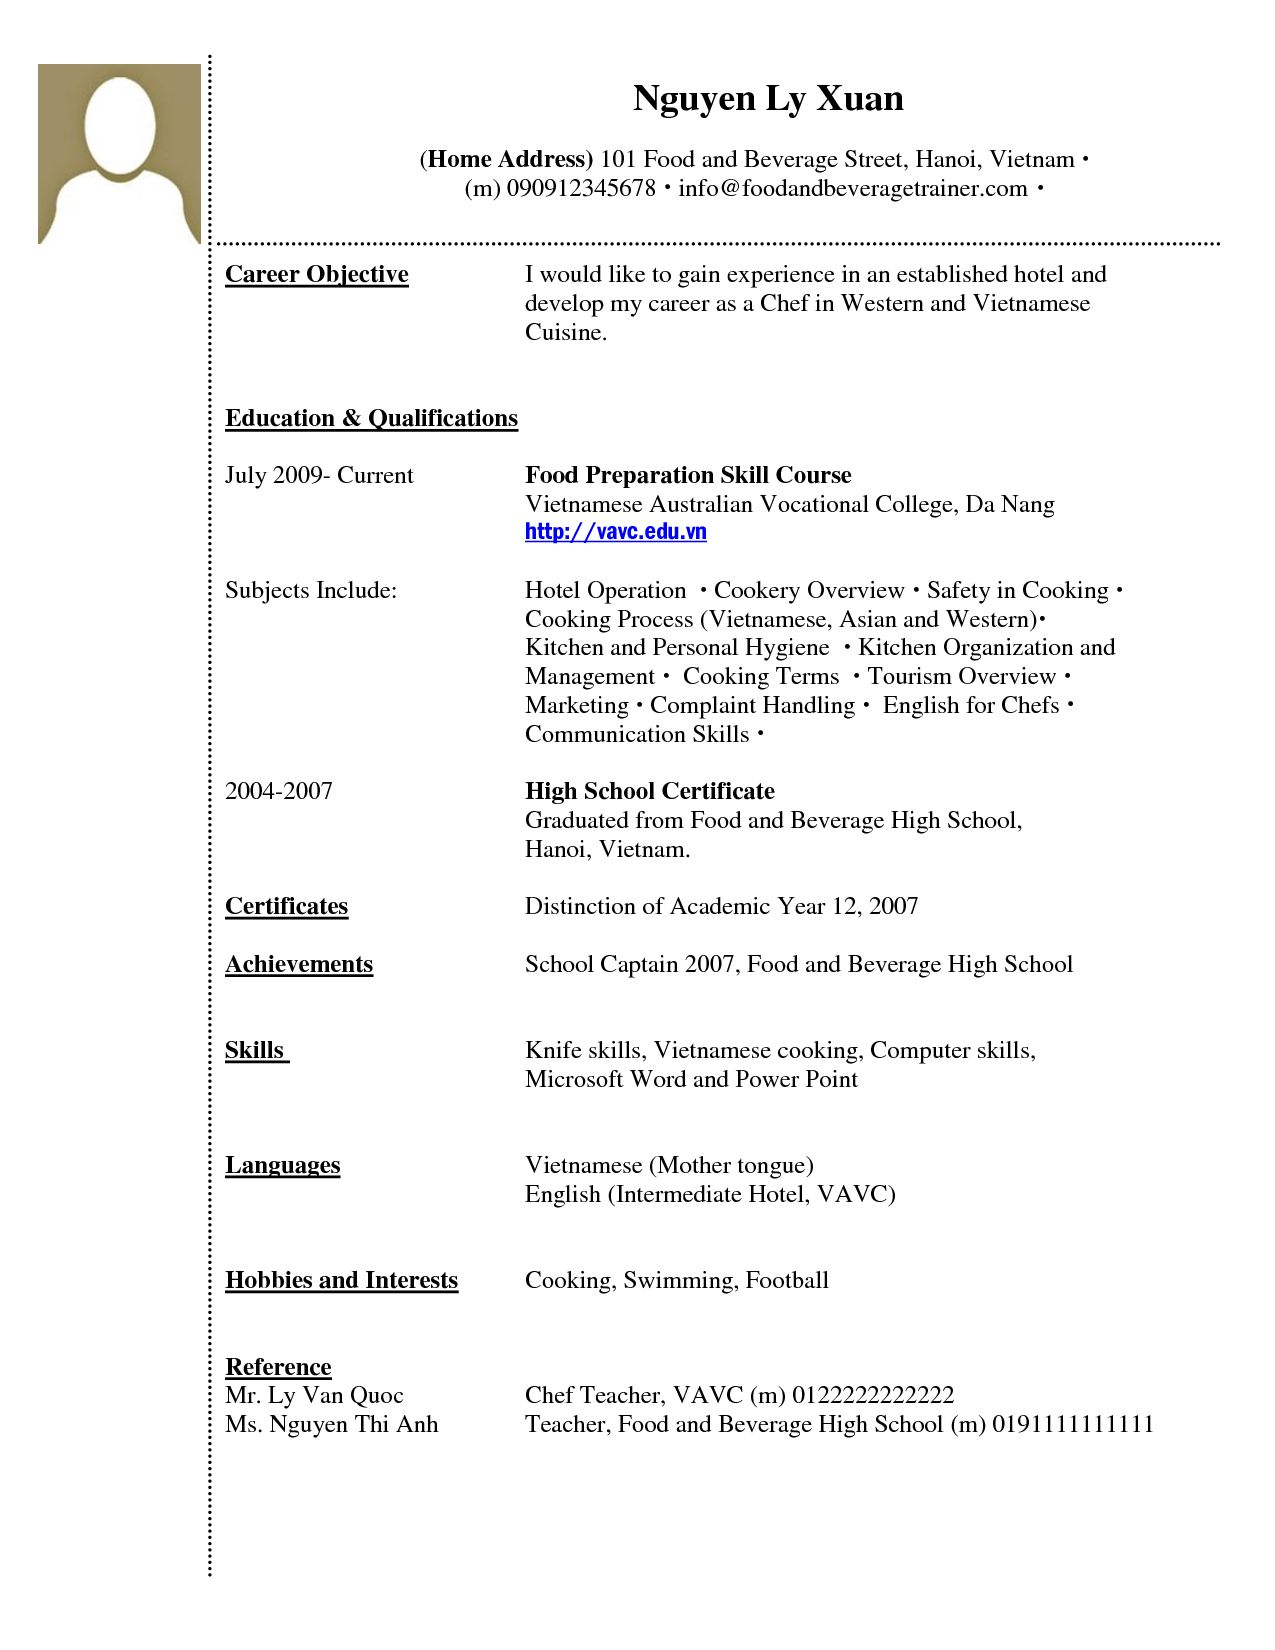 resume-examples.me -&nbspThis website is for sale! -&nbspresume